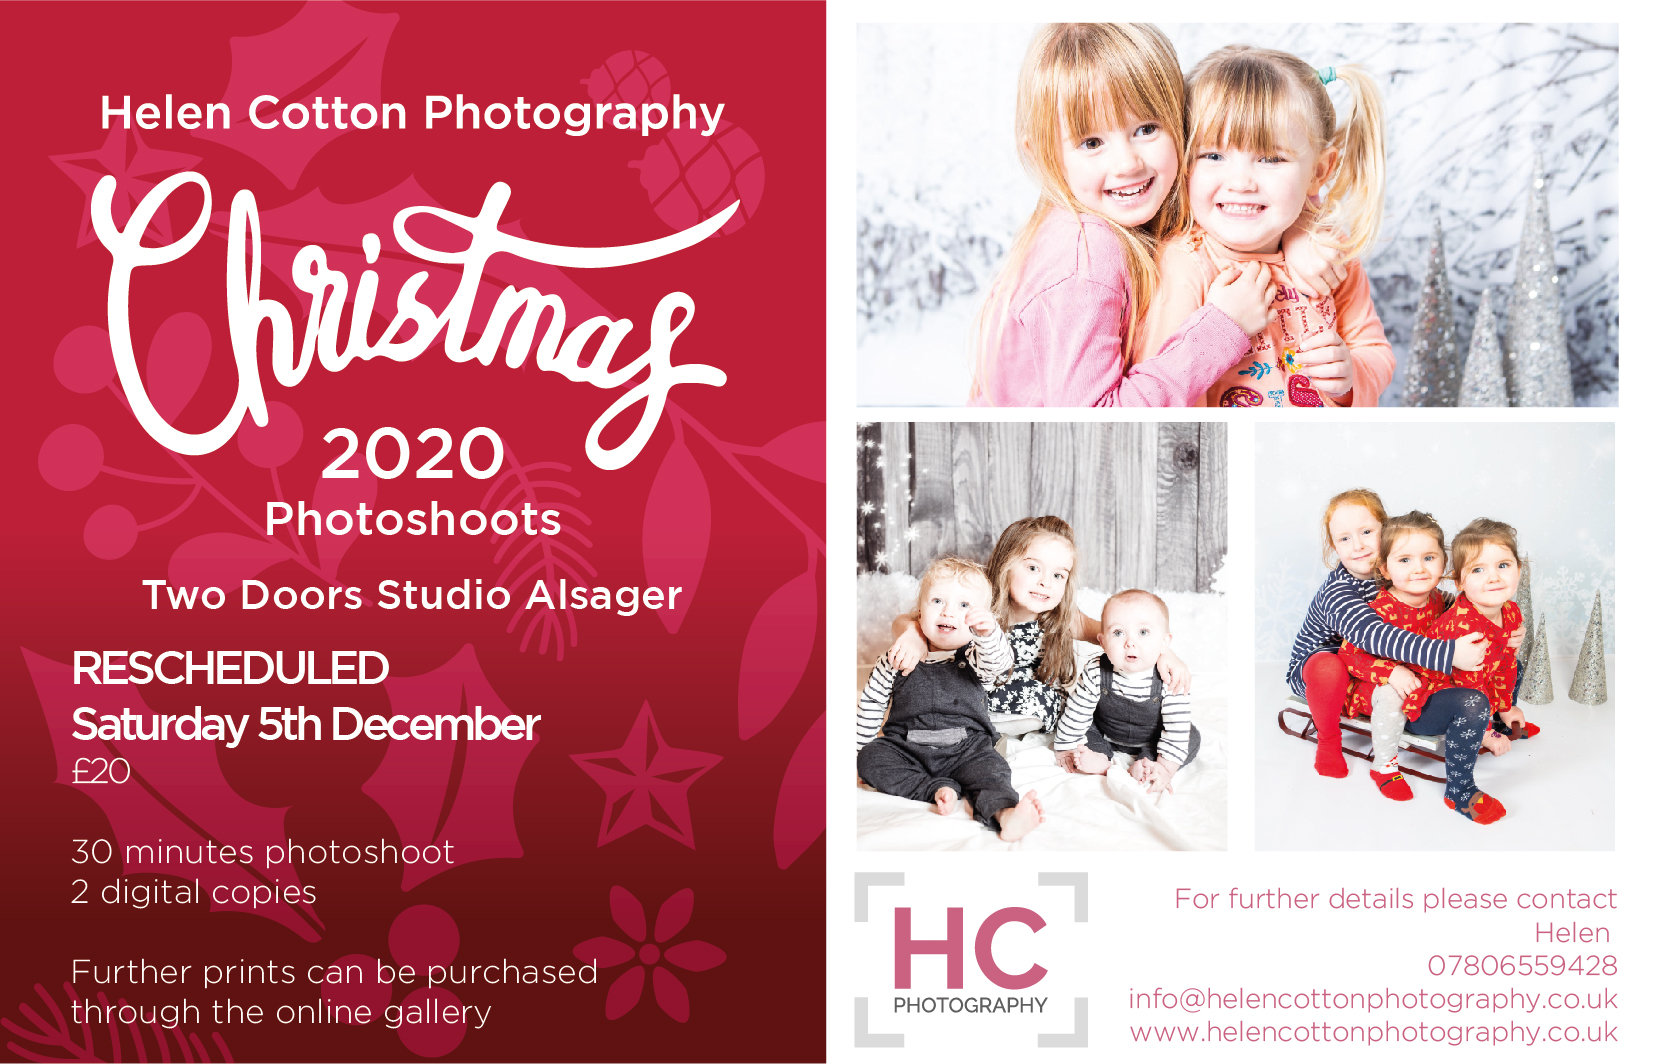 Saturday Alsager Christmas Photoshoot